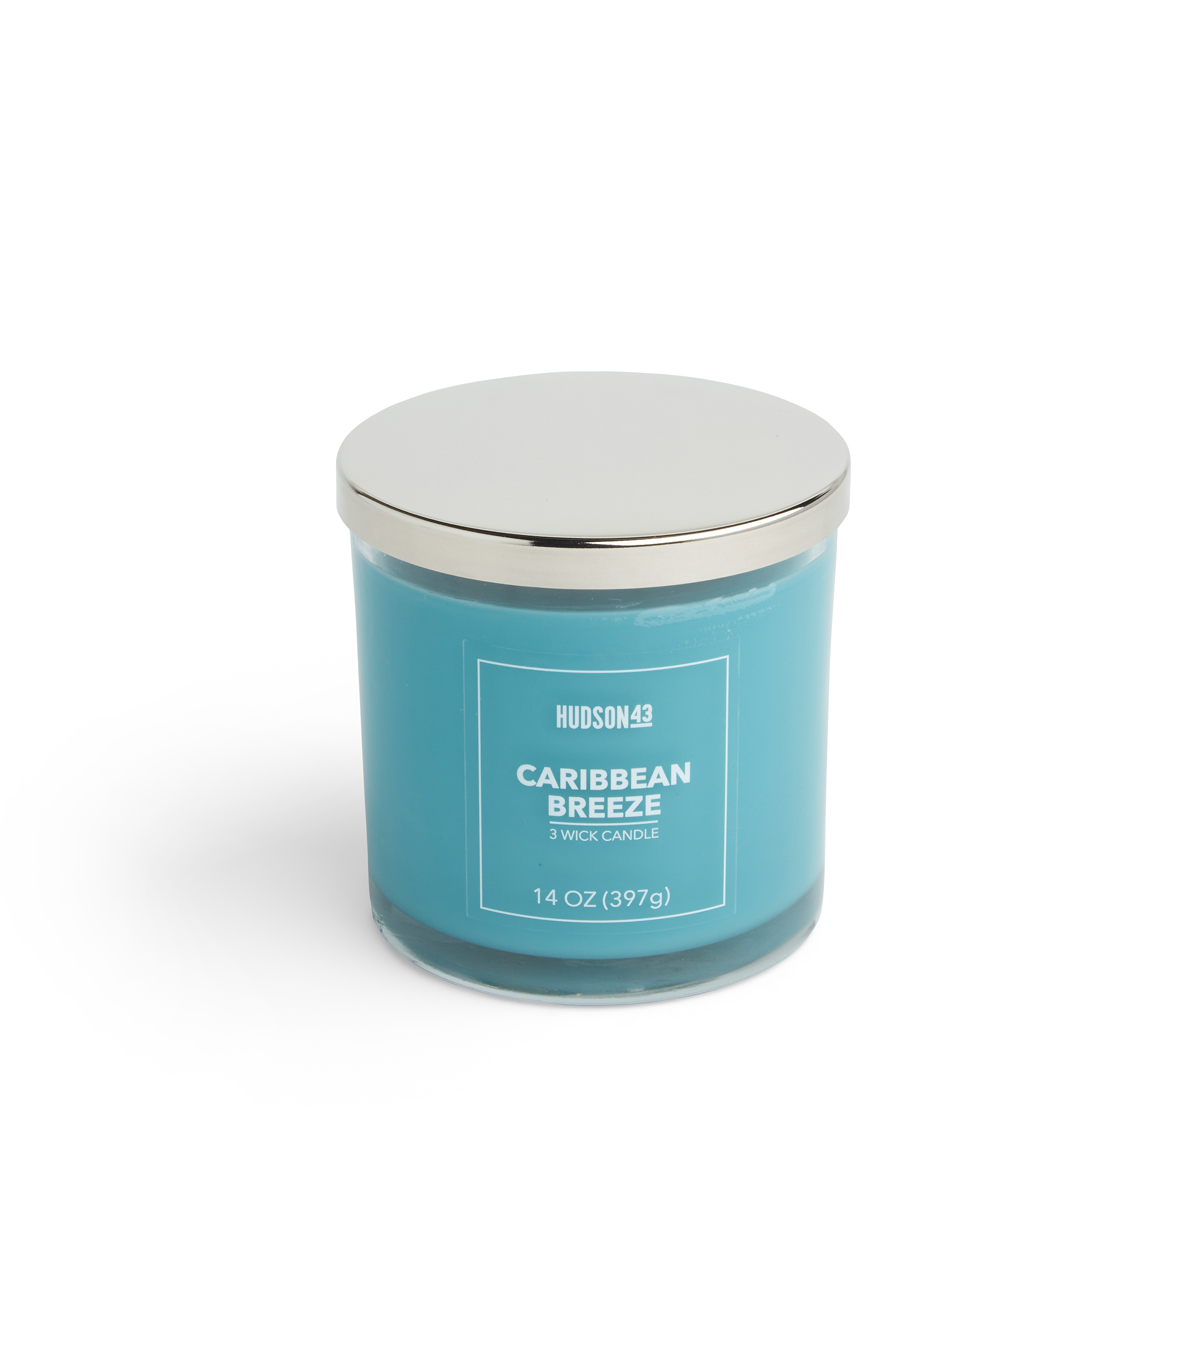 Hudson 43 Candle & Light 14 oz. Caribbean Breeze Scented Jar Candle